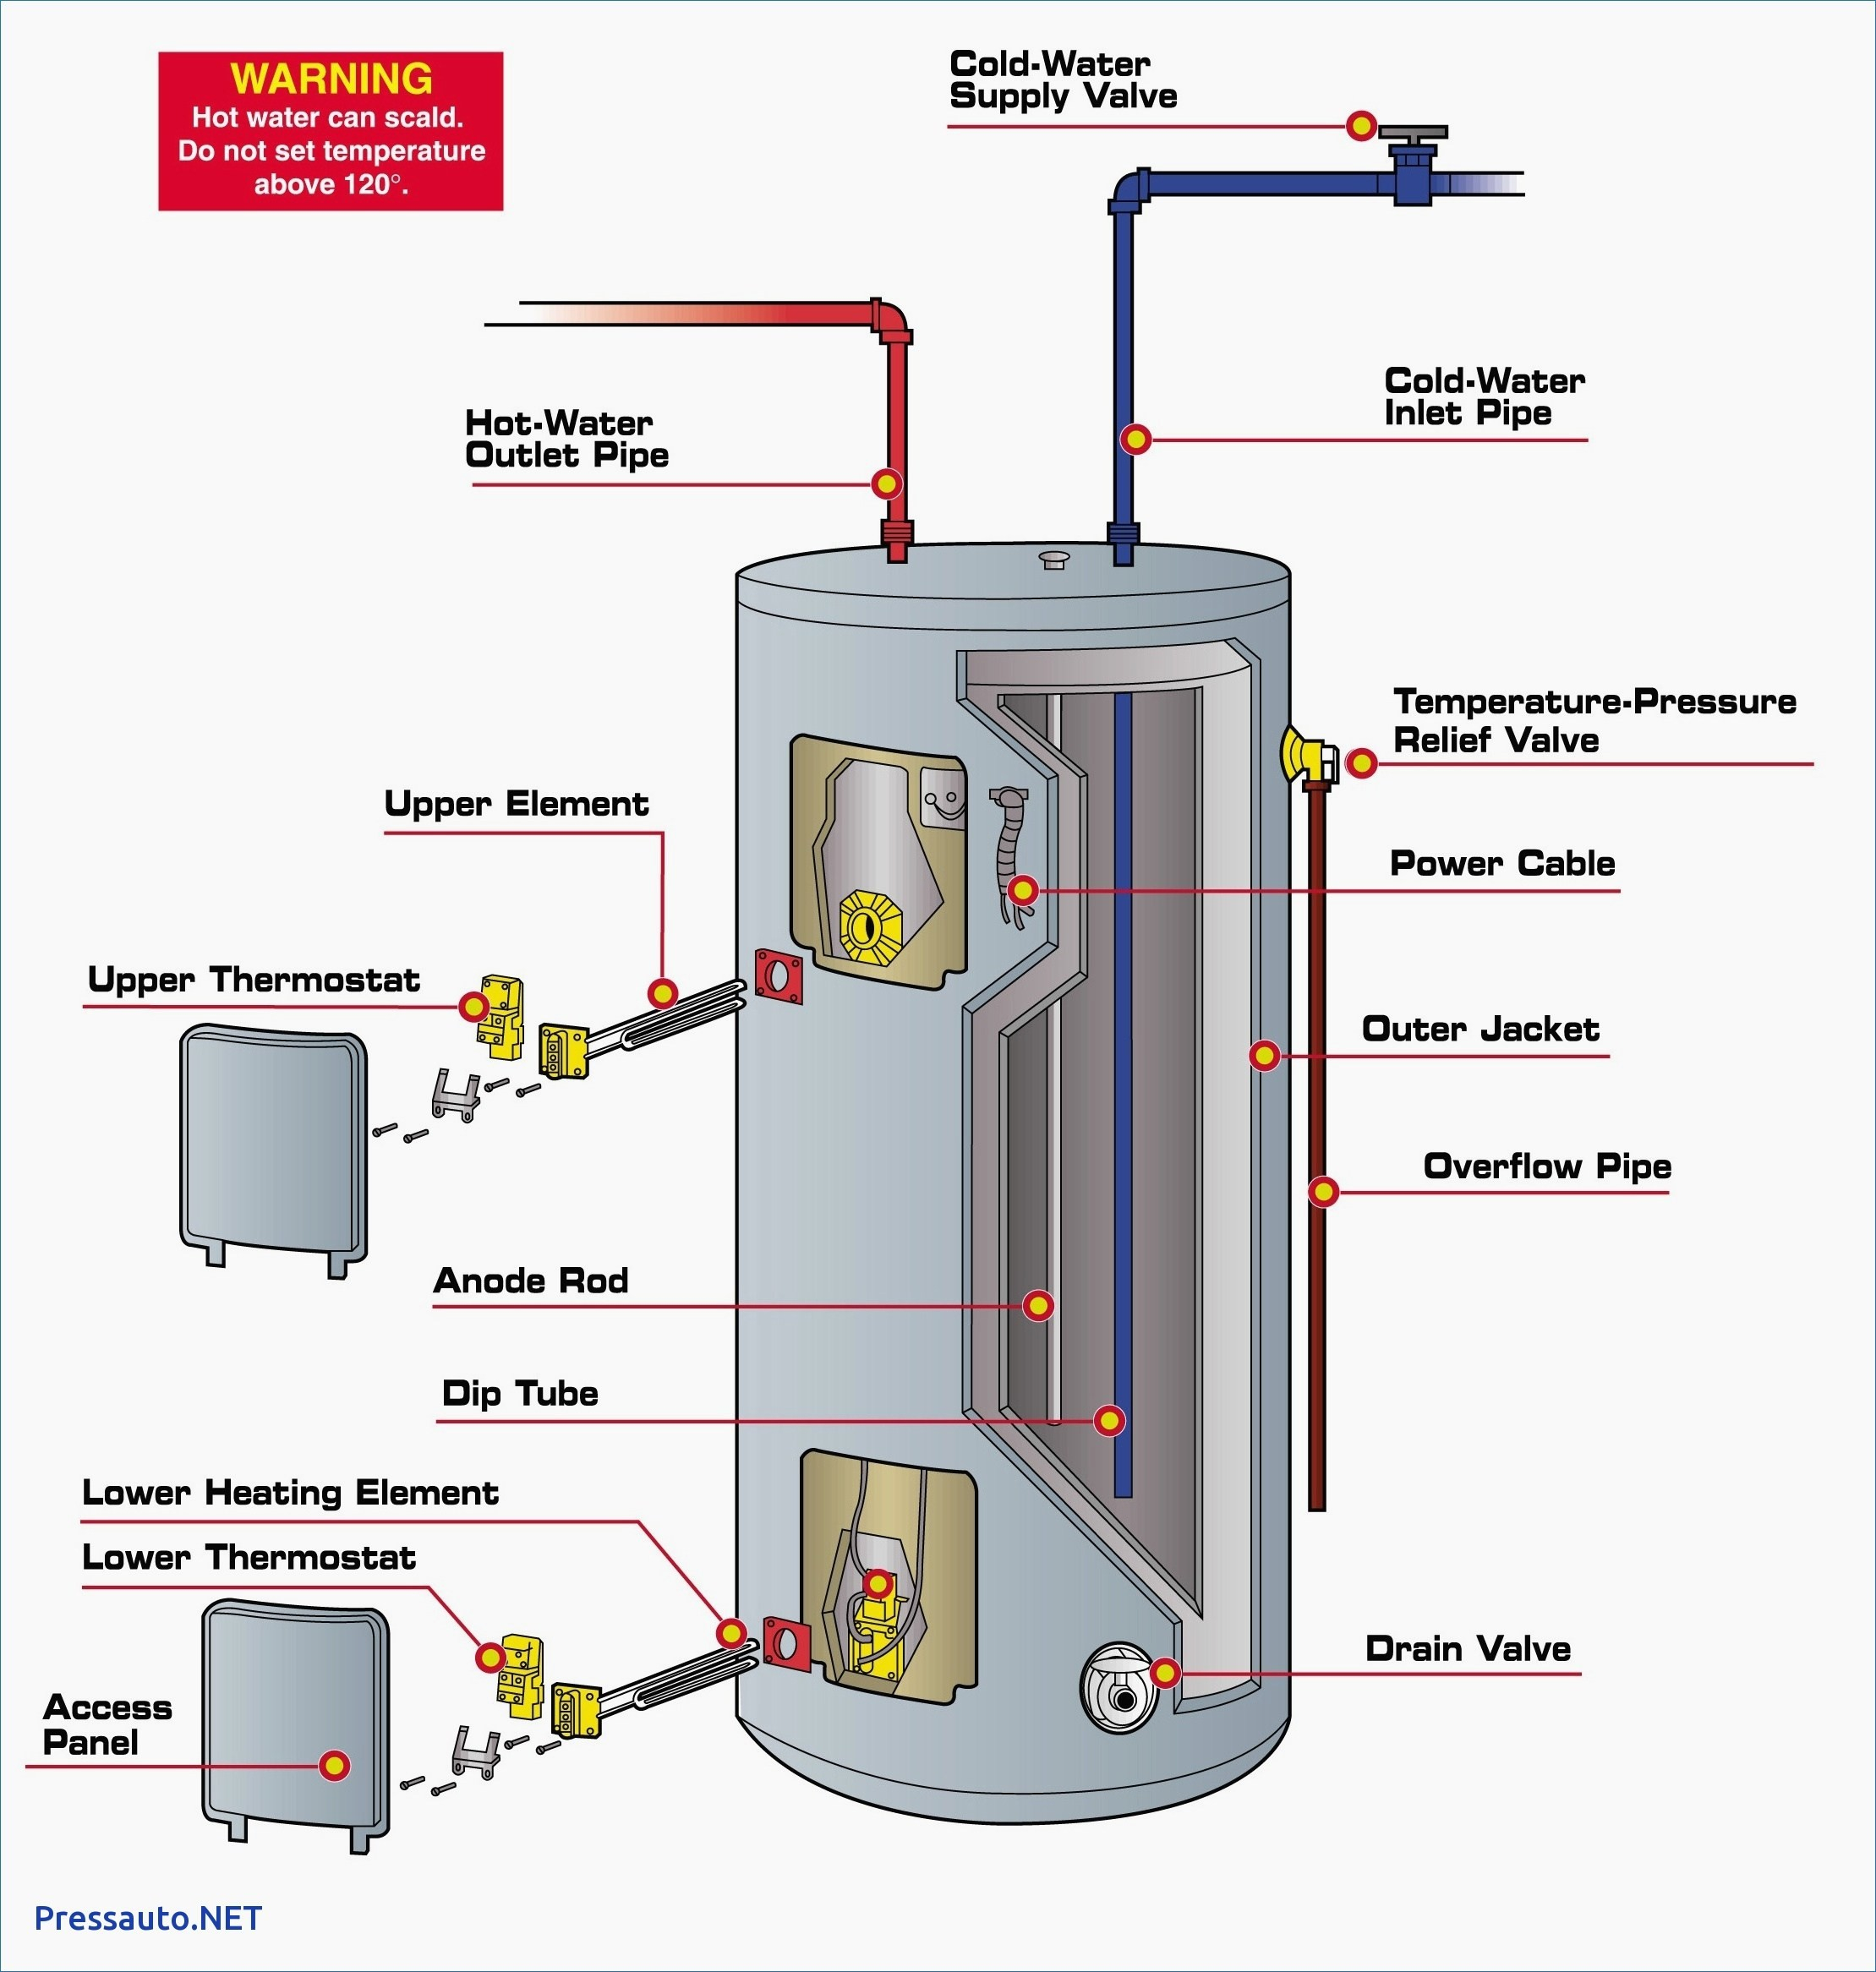 tankless water heater wiring diagram Download-Wiring Diagram Electric Water Heater Fresh New Hot Water Heater Wiring Diagram Diagram 1-o